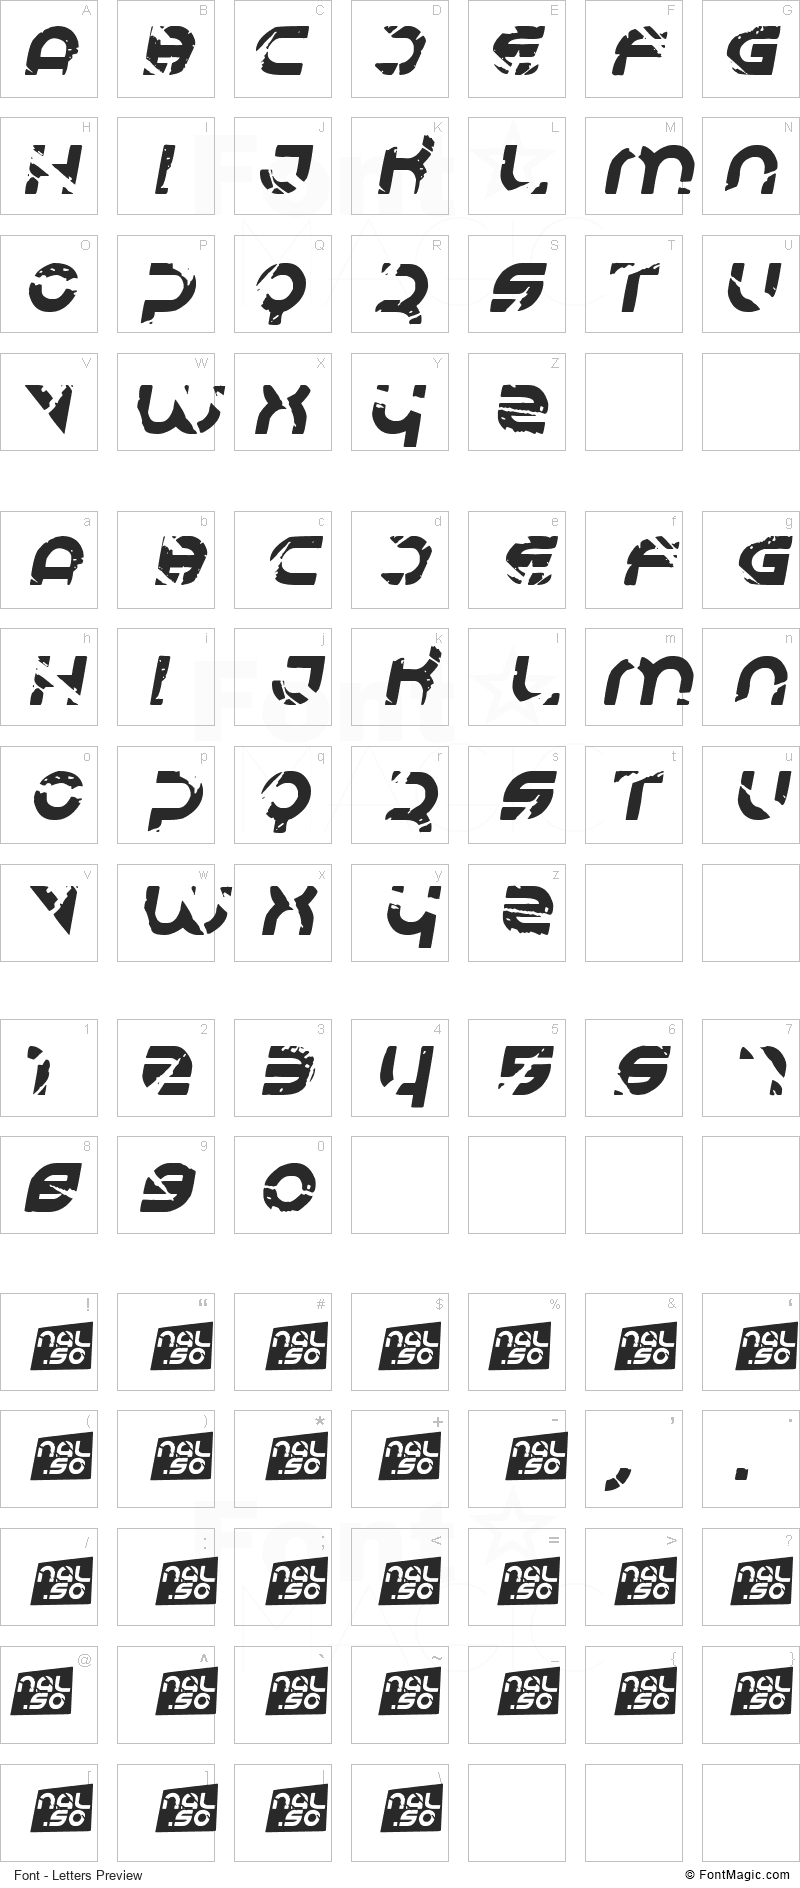 Respire Font - All Latters Preview Chart